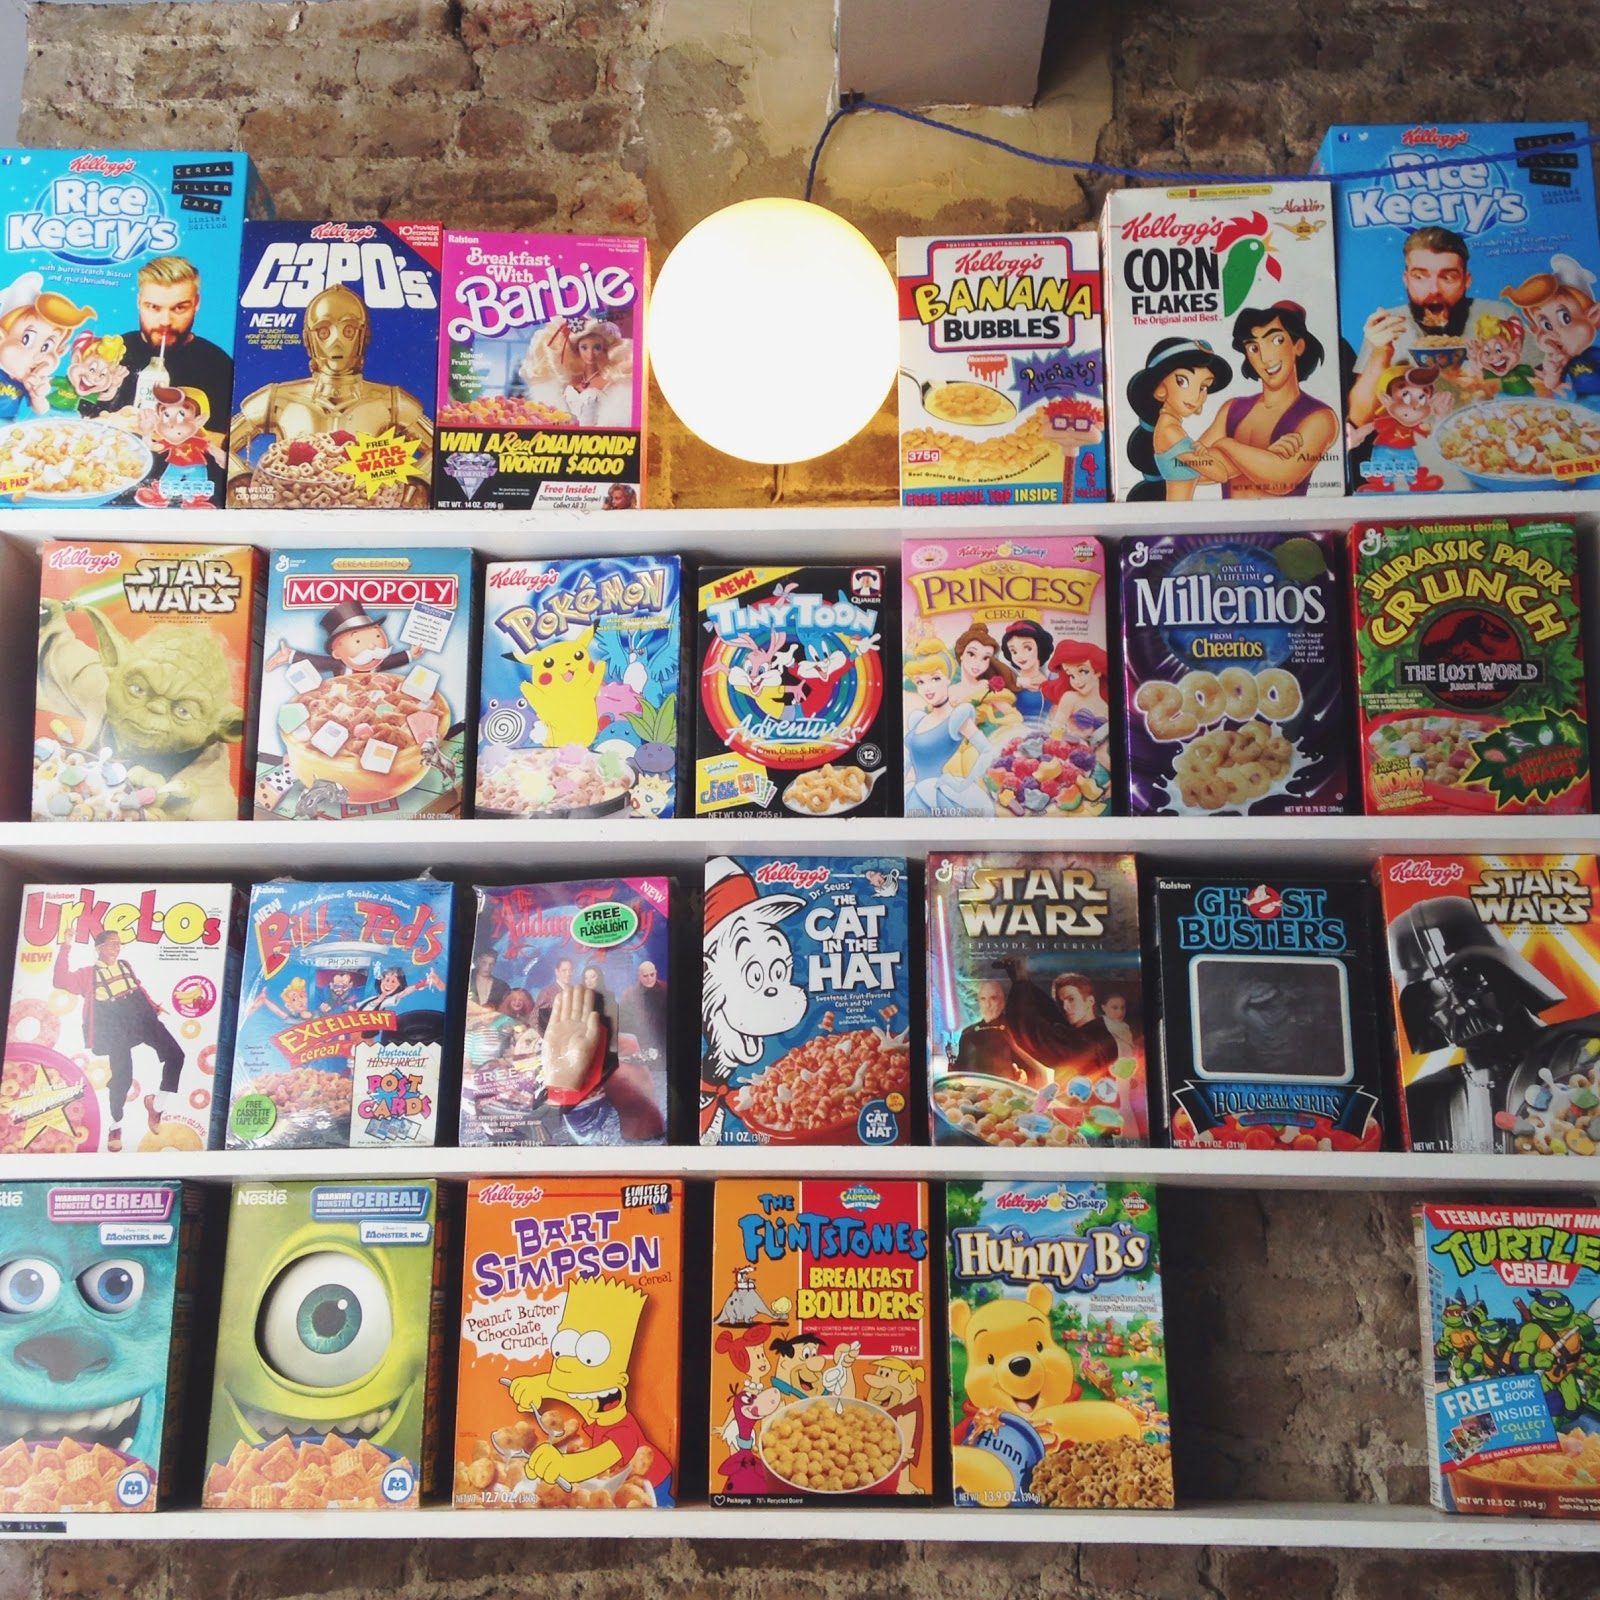 cereal killer cafe in london